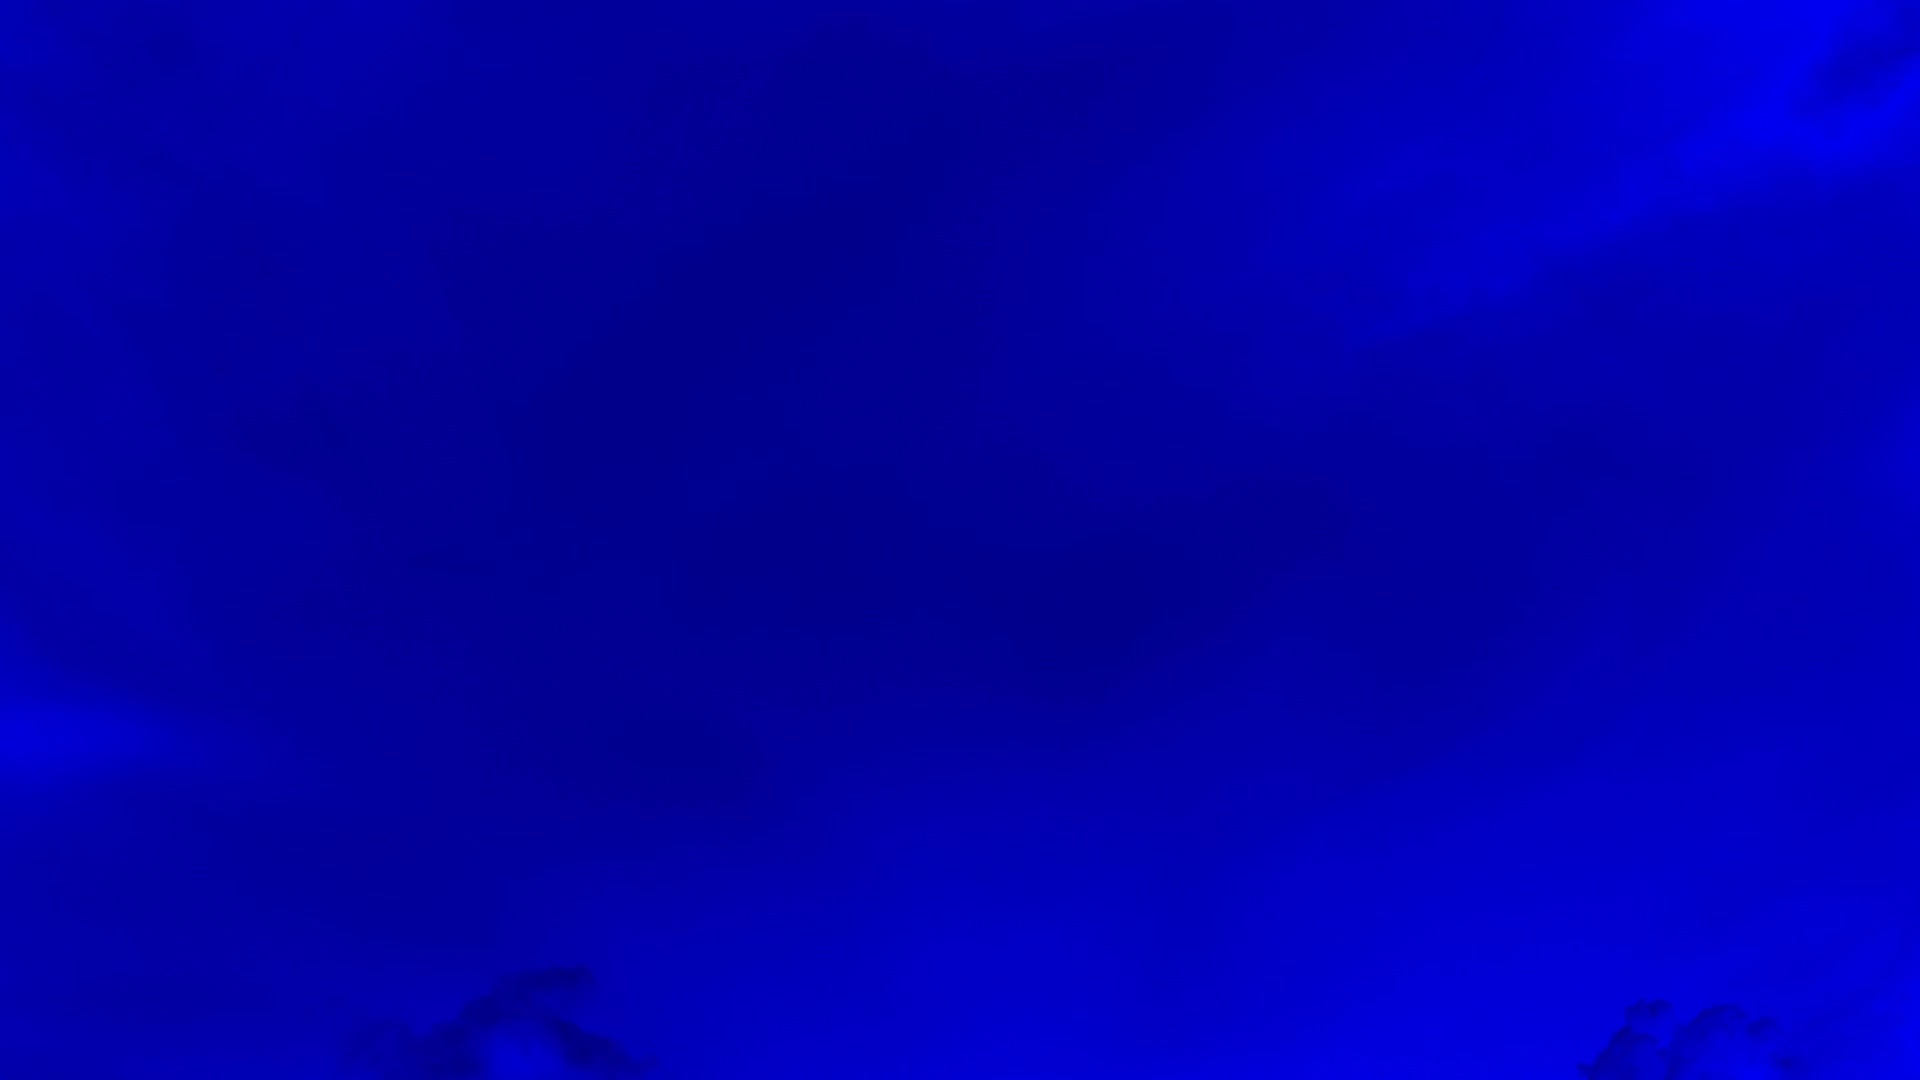 Subtle Clouds Abstract Background In Dark Blue Color